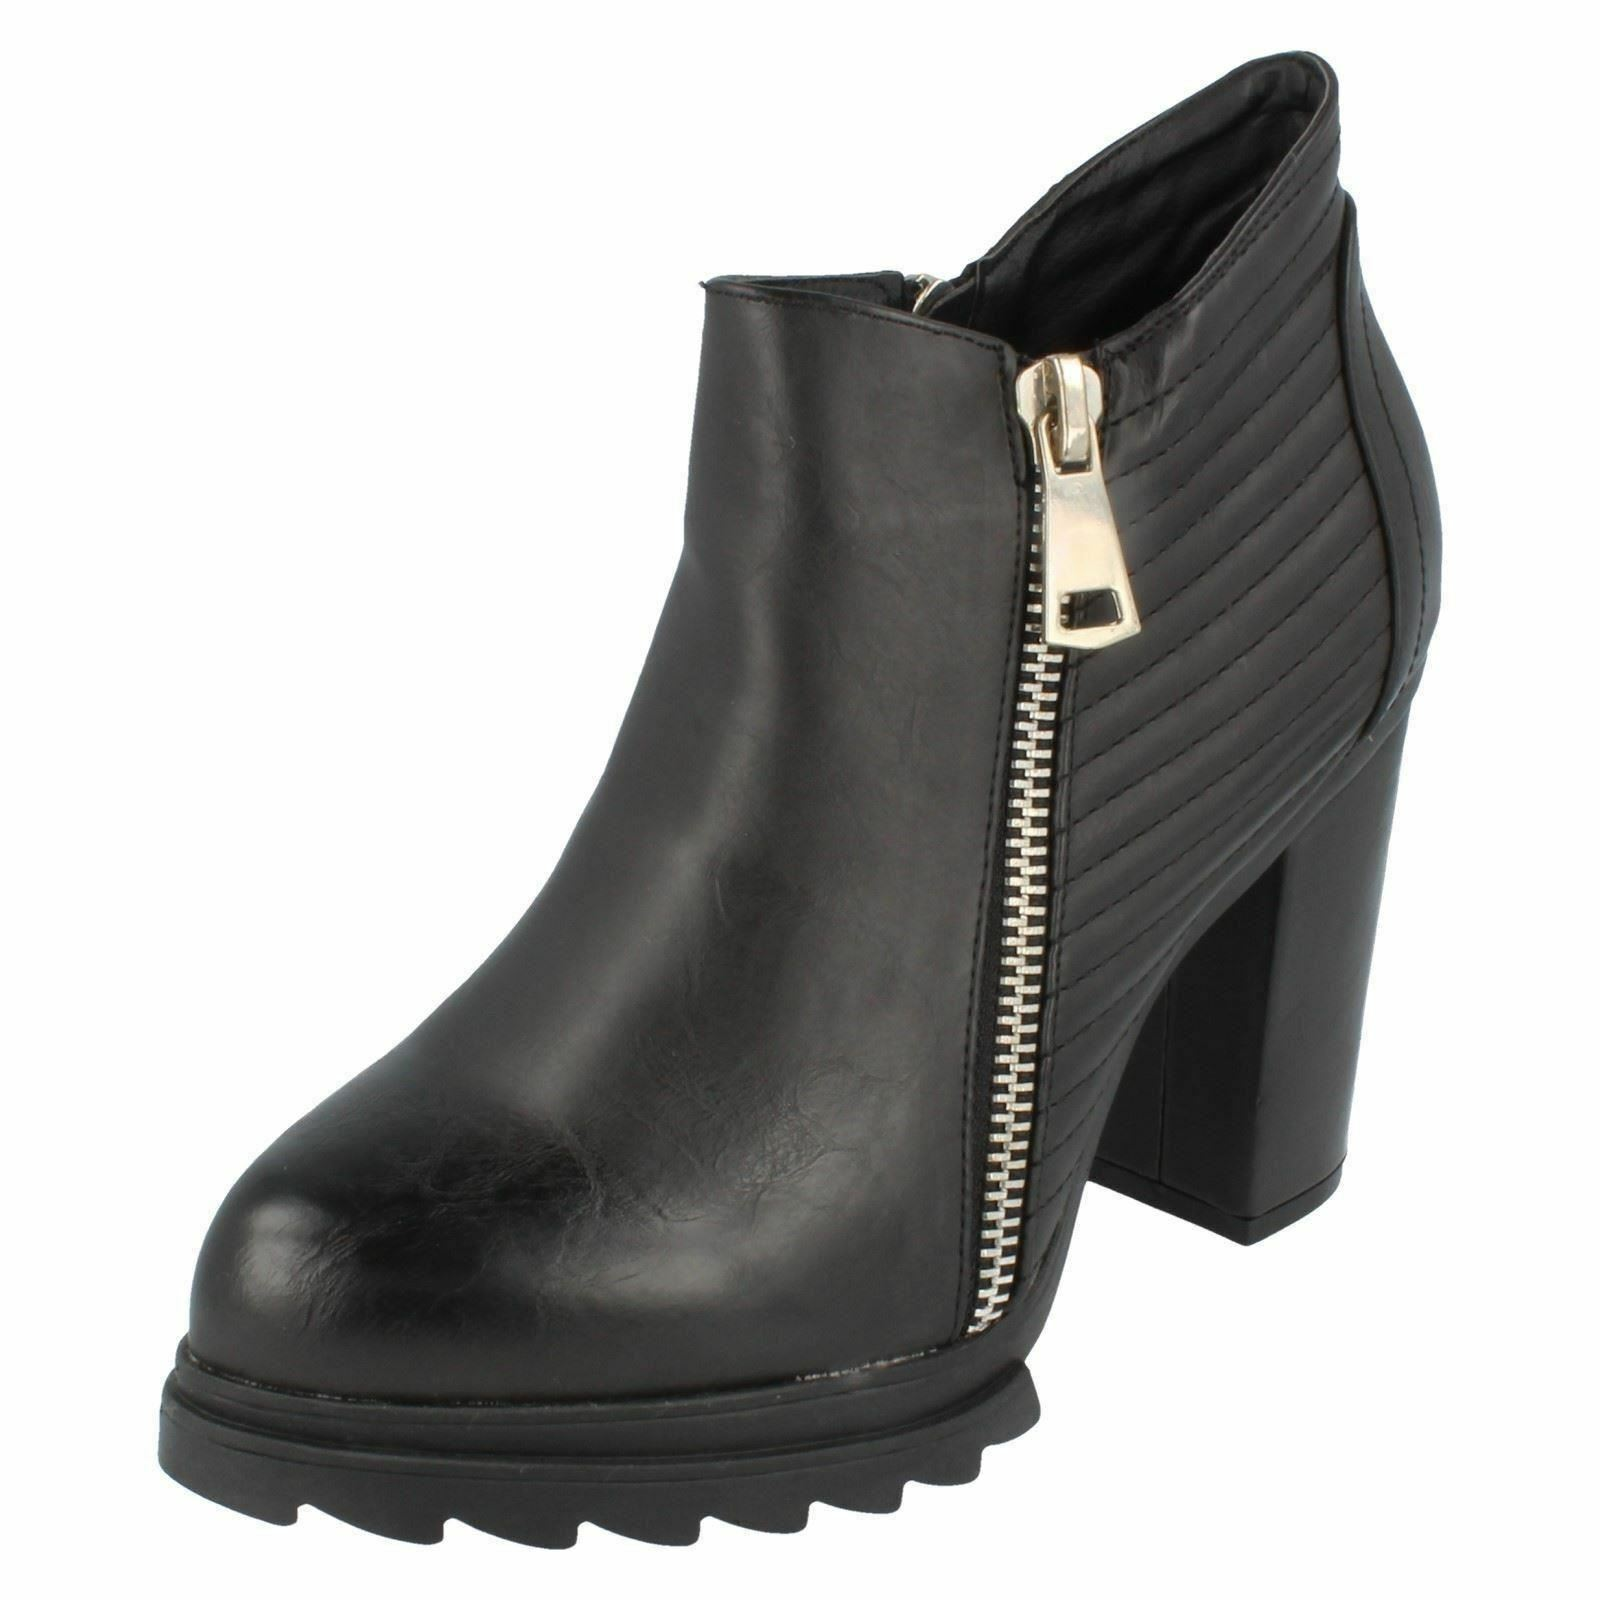 Ladies F50442 black synthetic platform ankle boot by Spot On Now £19.99